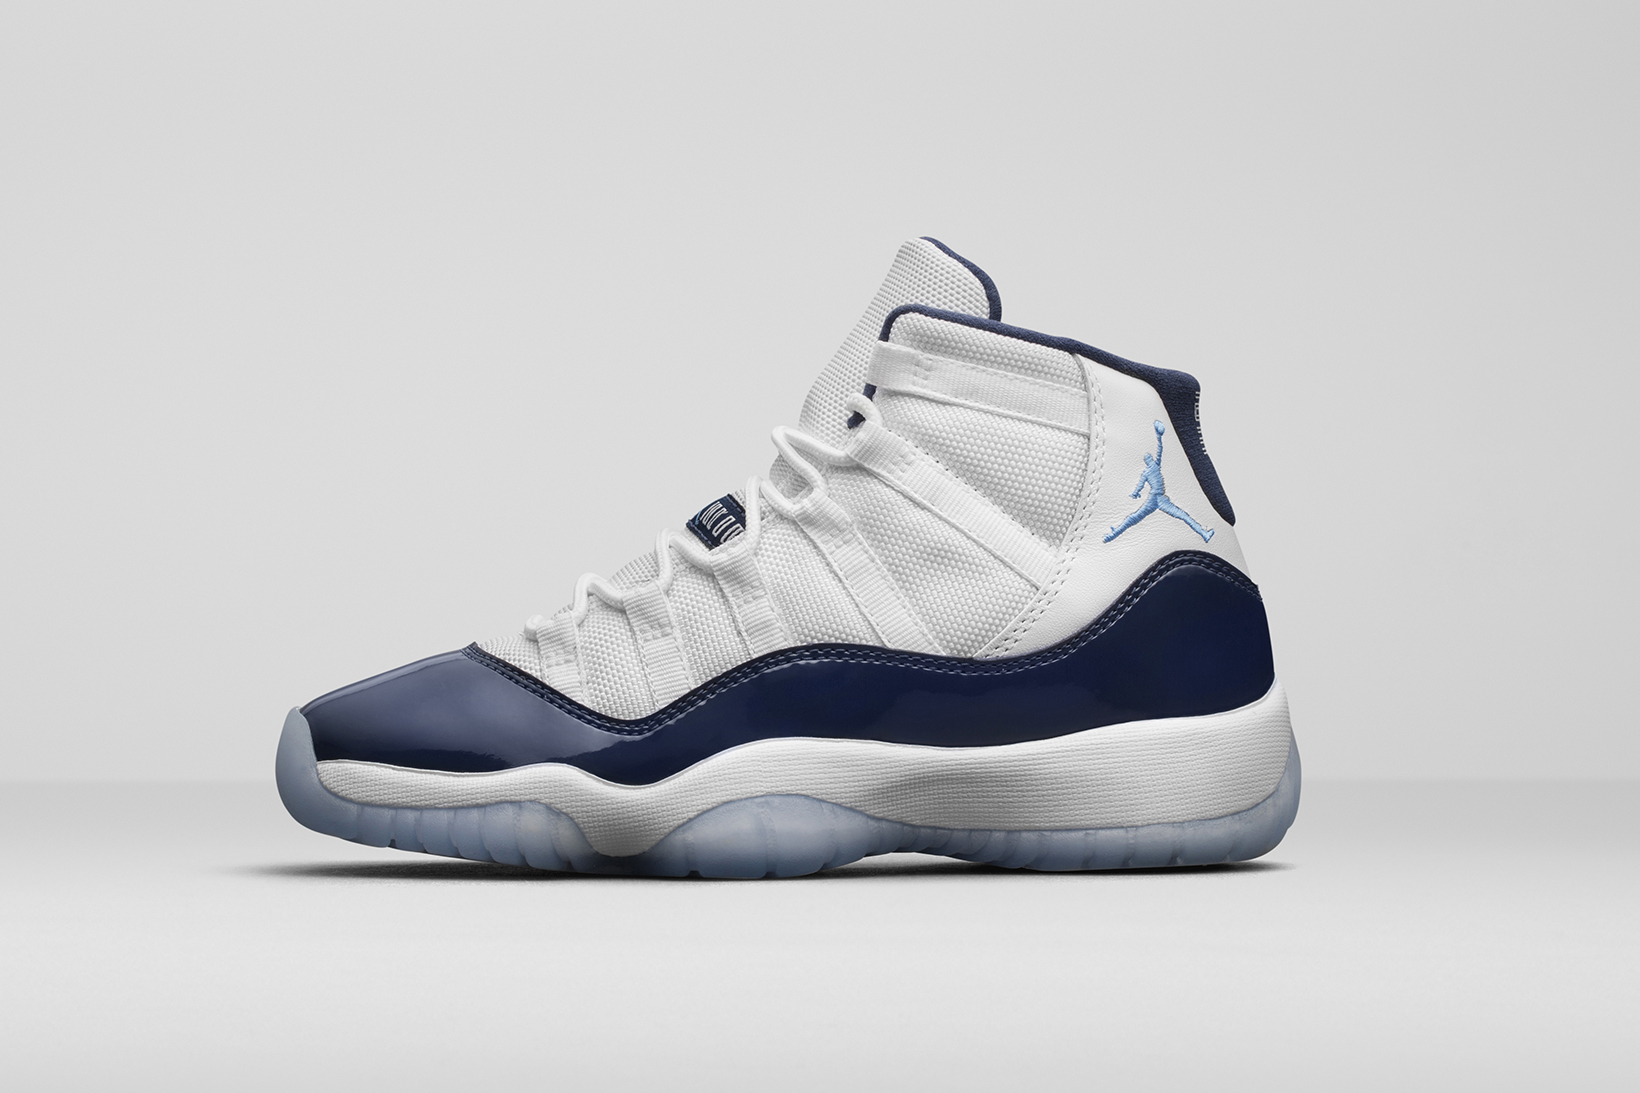 pretty nice 2893b c197b ... air jordan 11 concord releases in october 2018 for 220. 7d229 3167e   inexpensive the win like 82 pack is expected to launch on november 11 with  the win